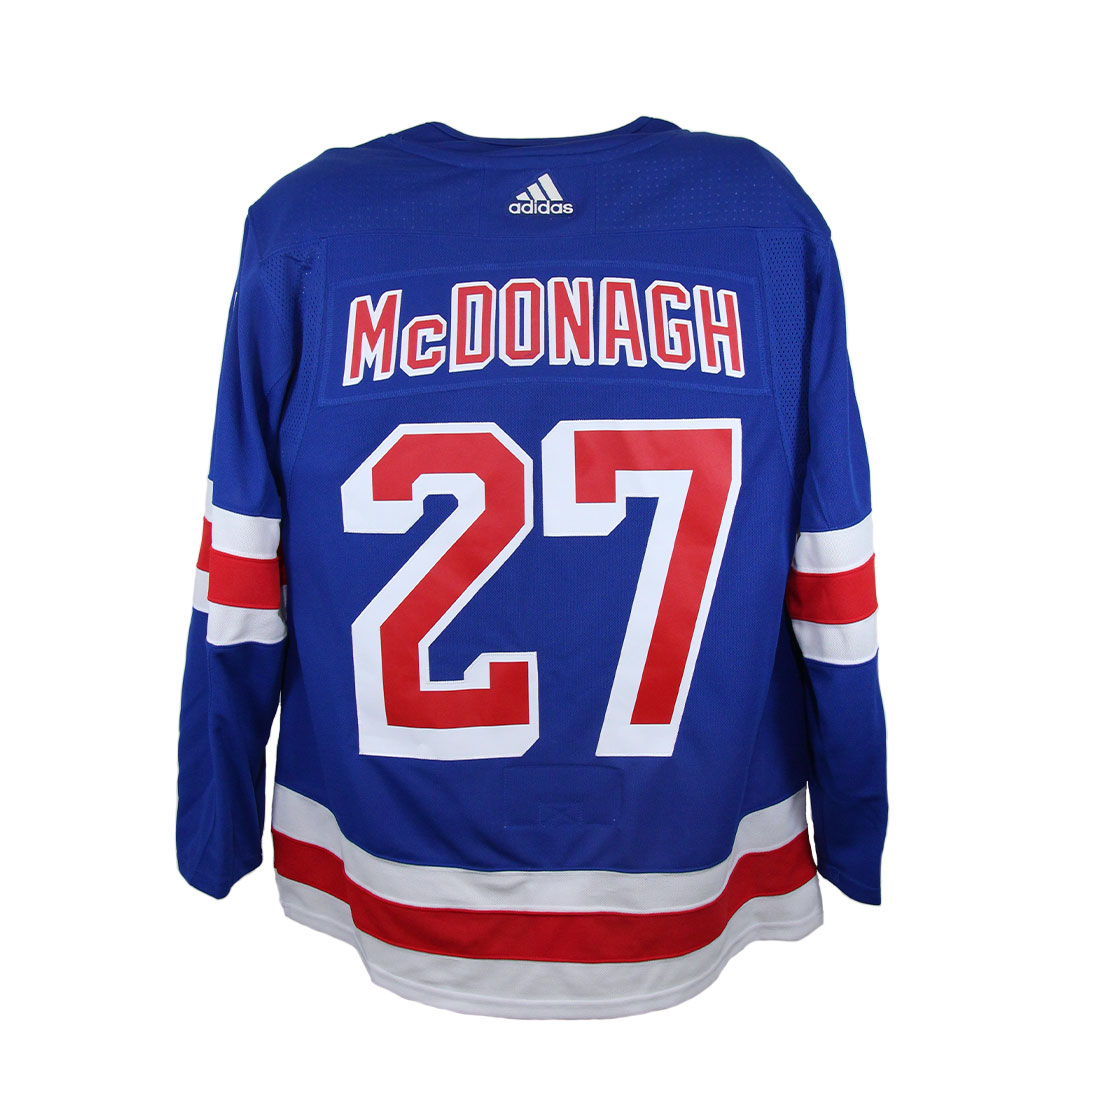 online retailer 90063 486b6 New York Rangers, #27 McDONAGH, Adidas Authentic Jersey